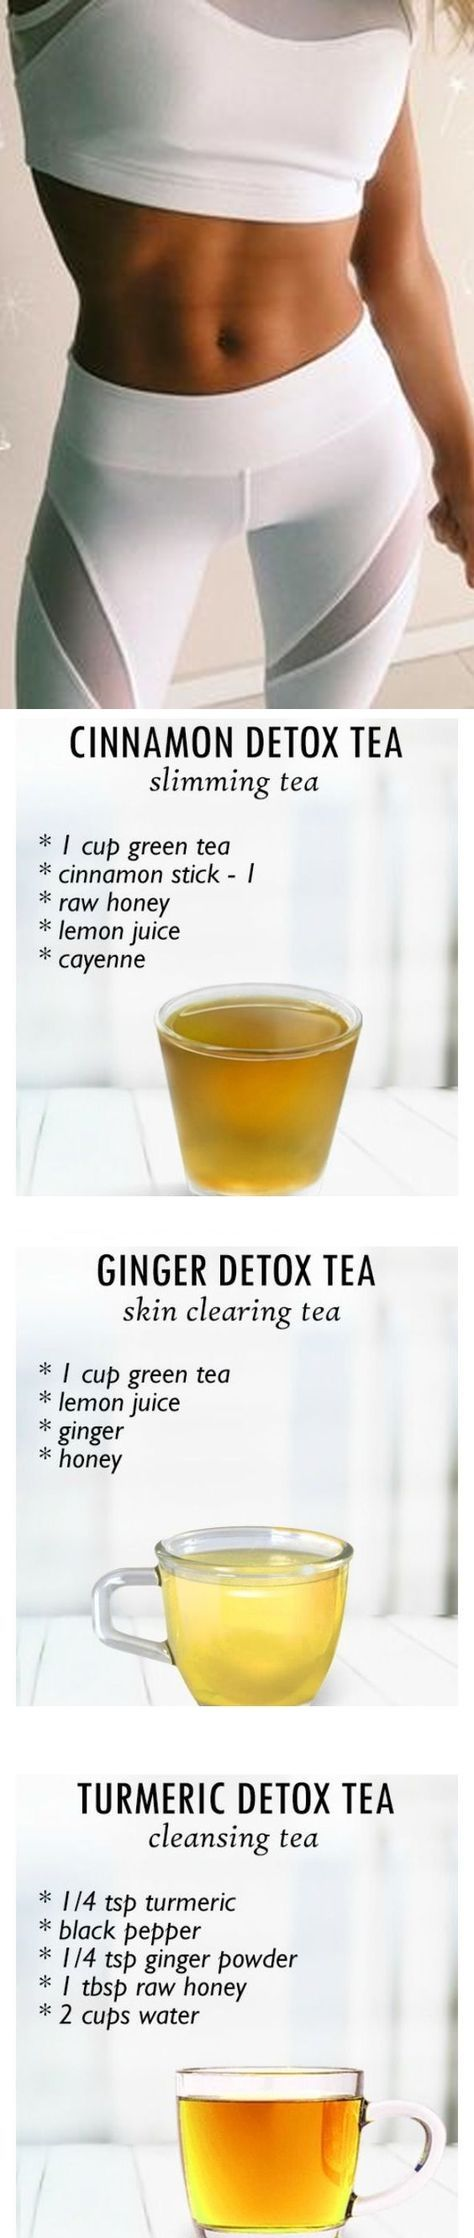 Fat Burner Teas For Weight loss | 6 Fat Burning Natural Herbs For Weight Loss http://weightlosssucesss.pw/the-5-commandments-of-smart-dieting/ #weightlosstips